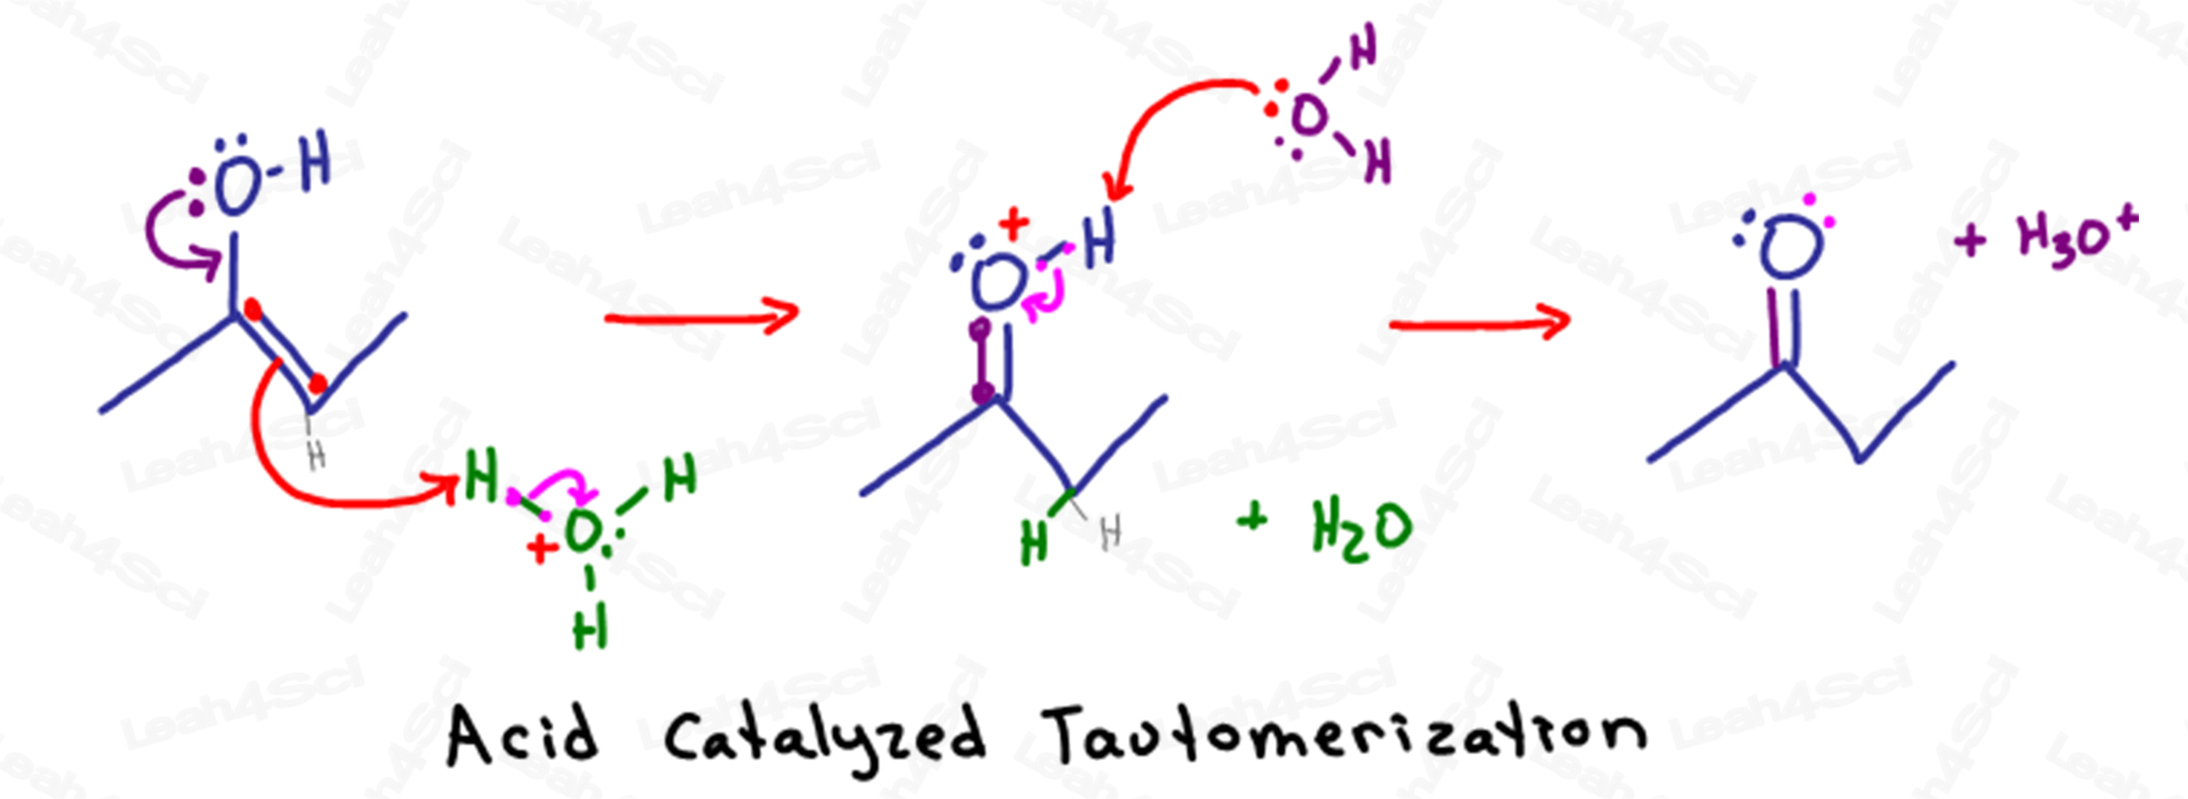 Tautomerization reaction mechanism in acid solution by Leah4sci